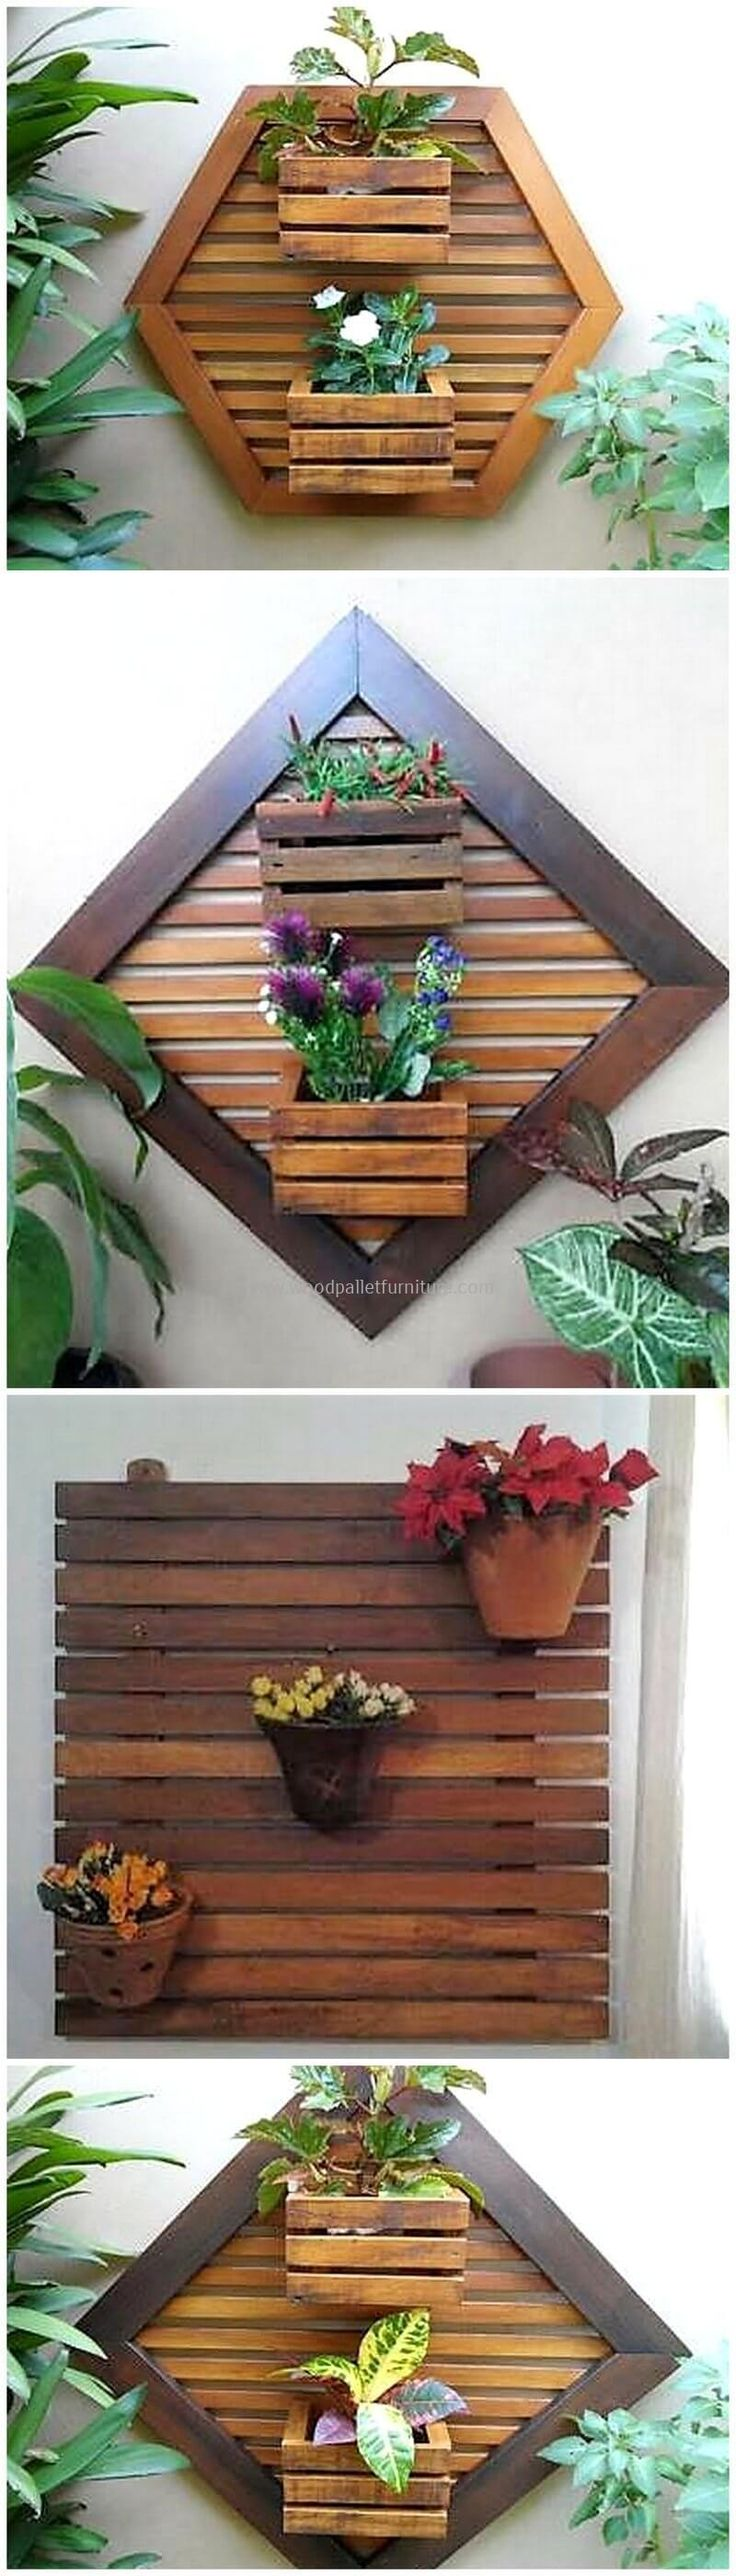 Thispallet wall decor planter art is all finished out with the premium coverage of useless wooden pallets and with a little use of brown paint shade on it.  #pallets #woodpallet #palletfurniture #palletproject #palletideas #recycle #recycledpallet #reclaimed #repurposed #reused #restore #upcycle #diy #palletart #pallet #recycling #upcycling #refurnish #recycled #woodwork #woodworking